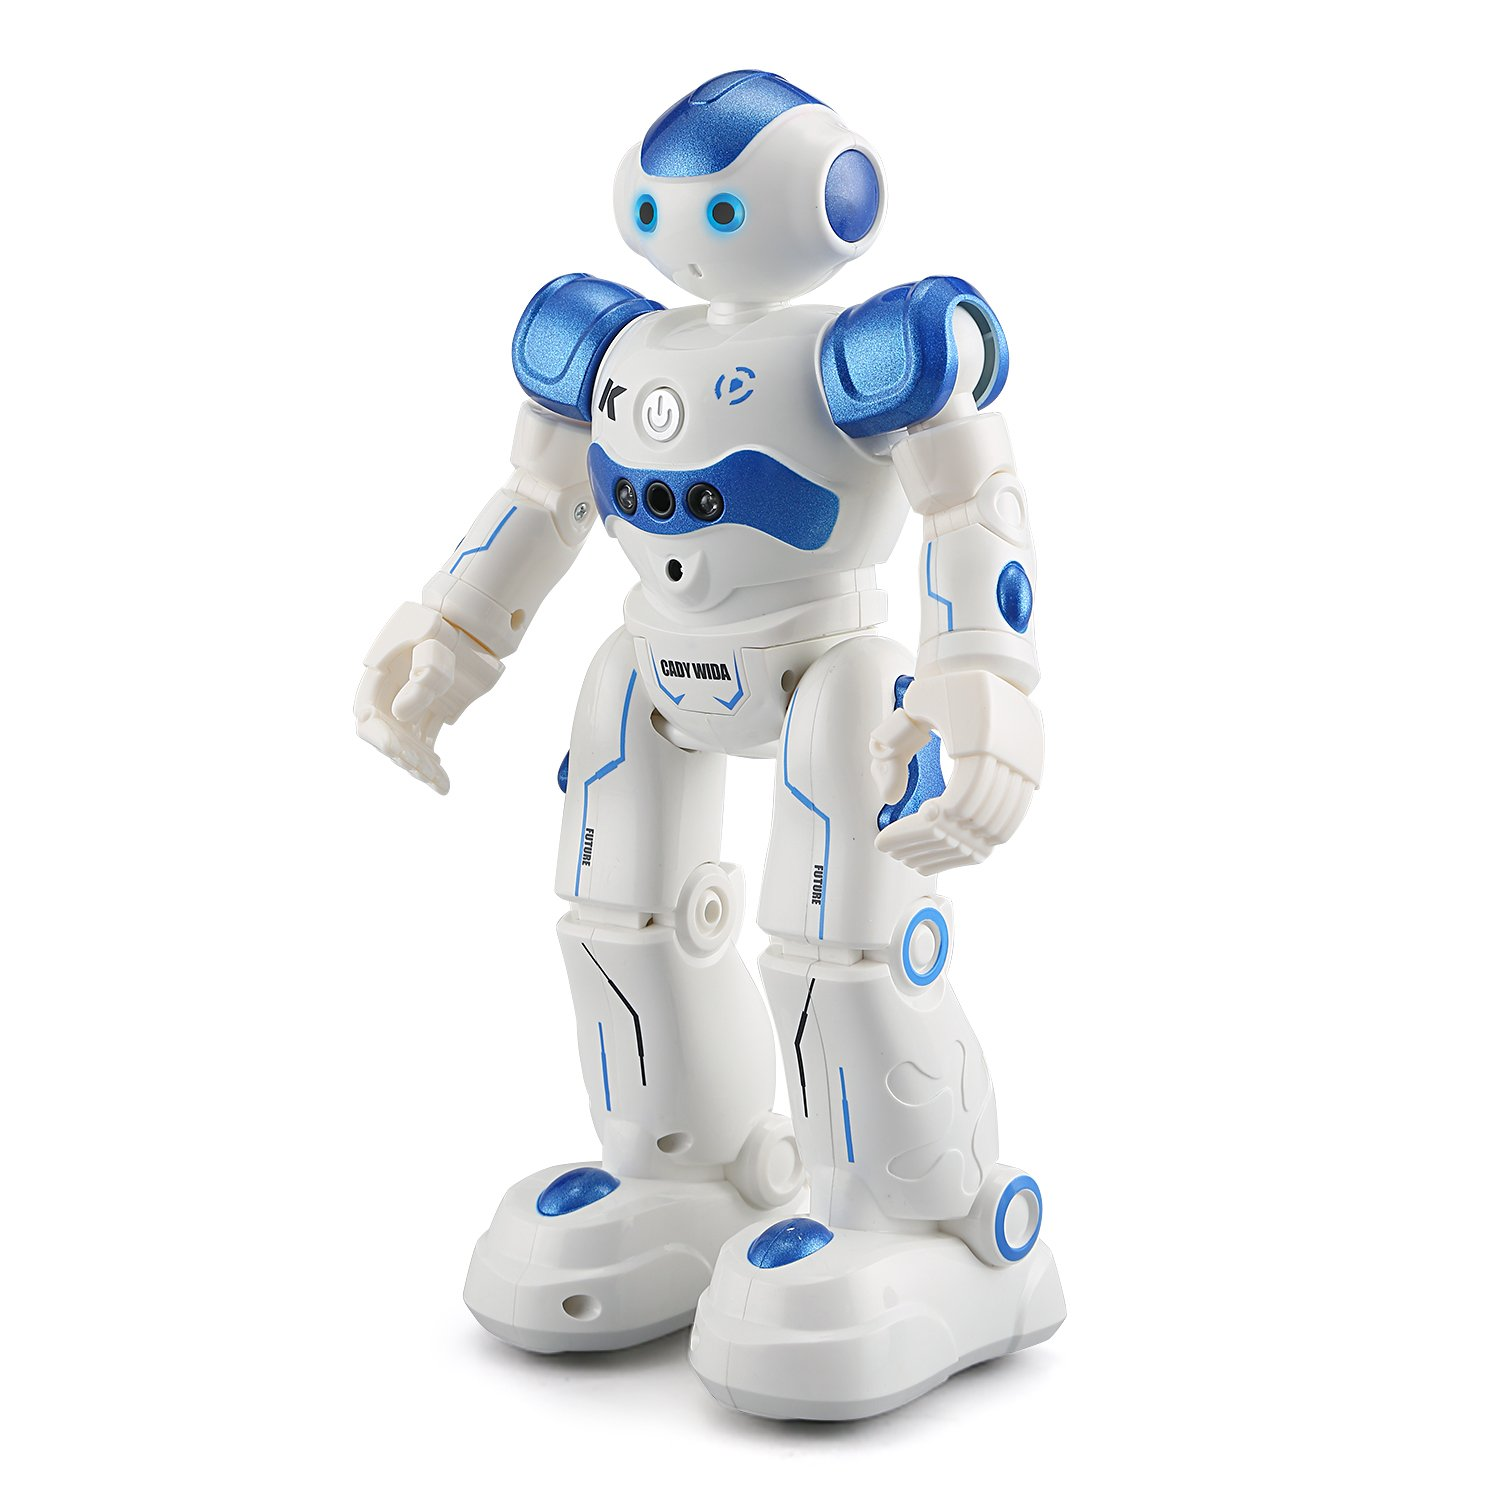 Toys For Boys Robot Kids Toddler Robot 6 7 8 9 Year Old Age Girls